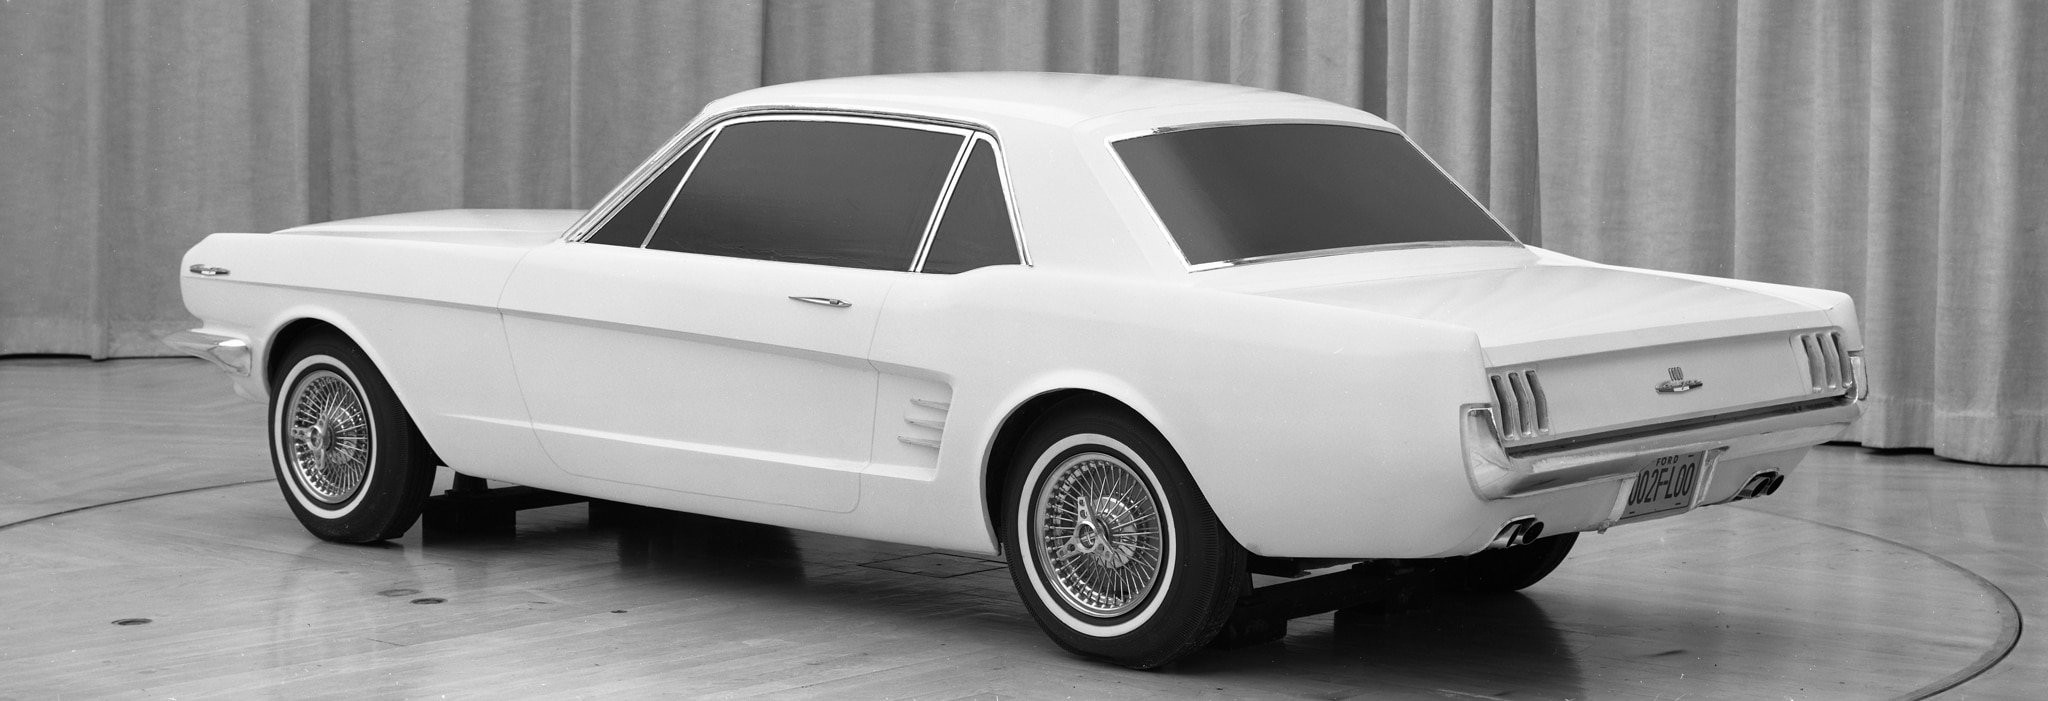 1965 Mustang Price >> From Concept to Showroom: 1965 Ford Mustang Sketches